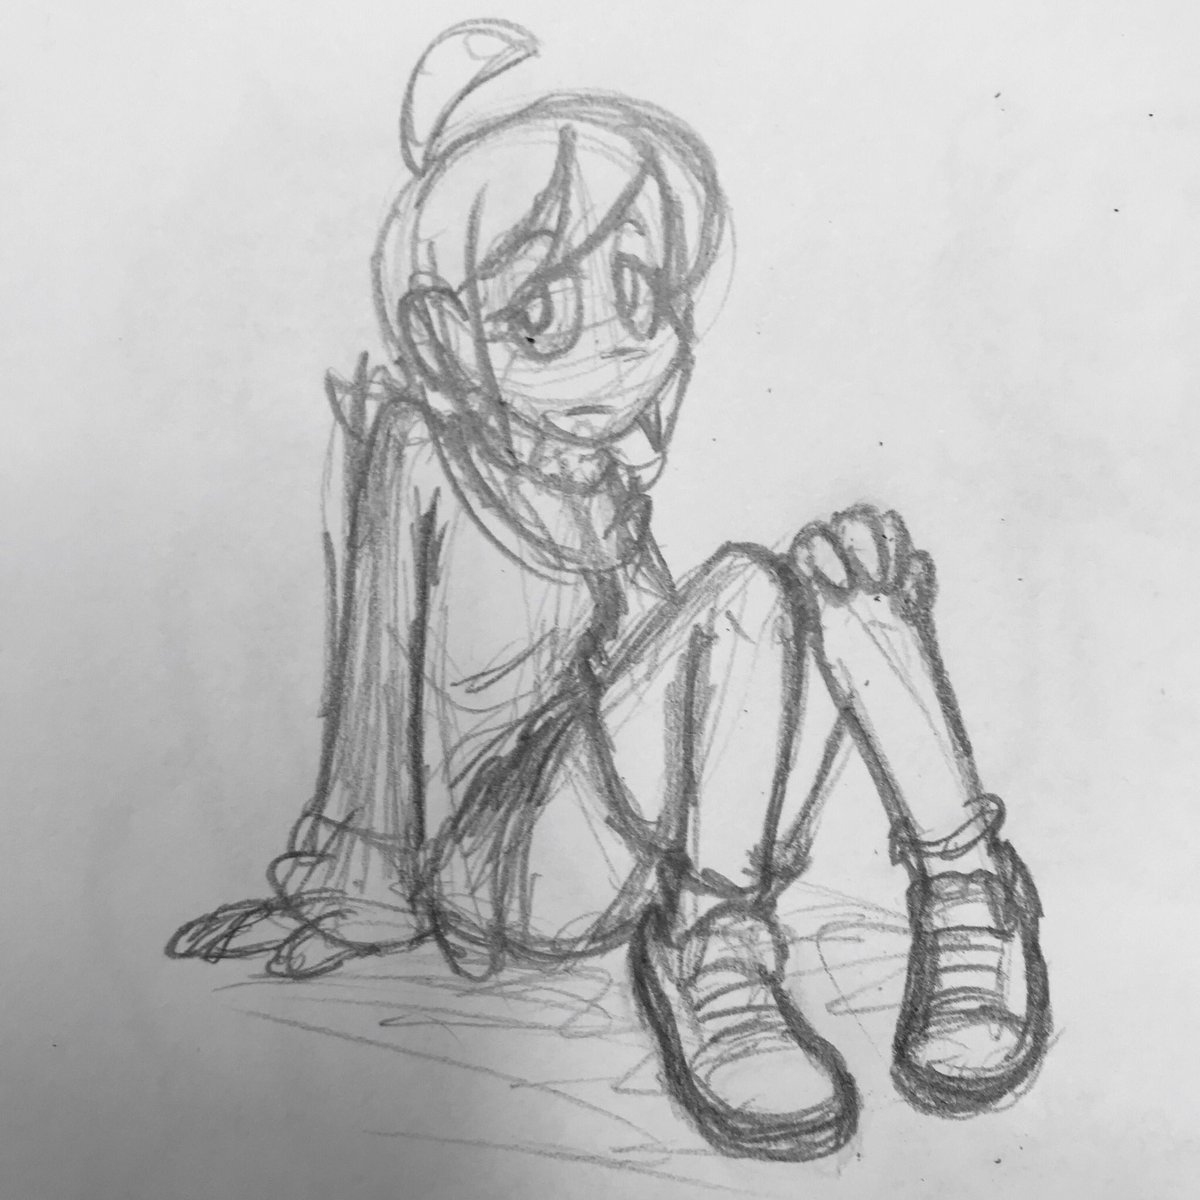 Another drawing of girl